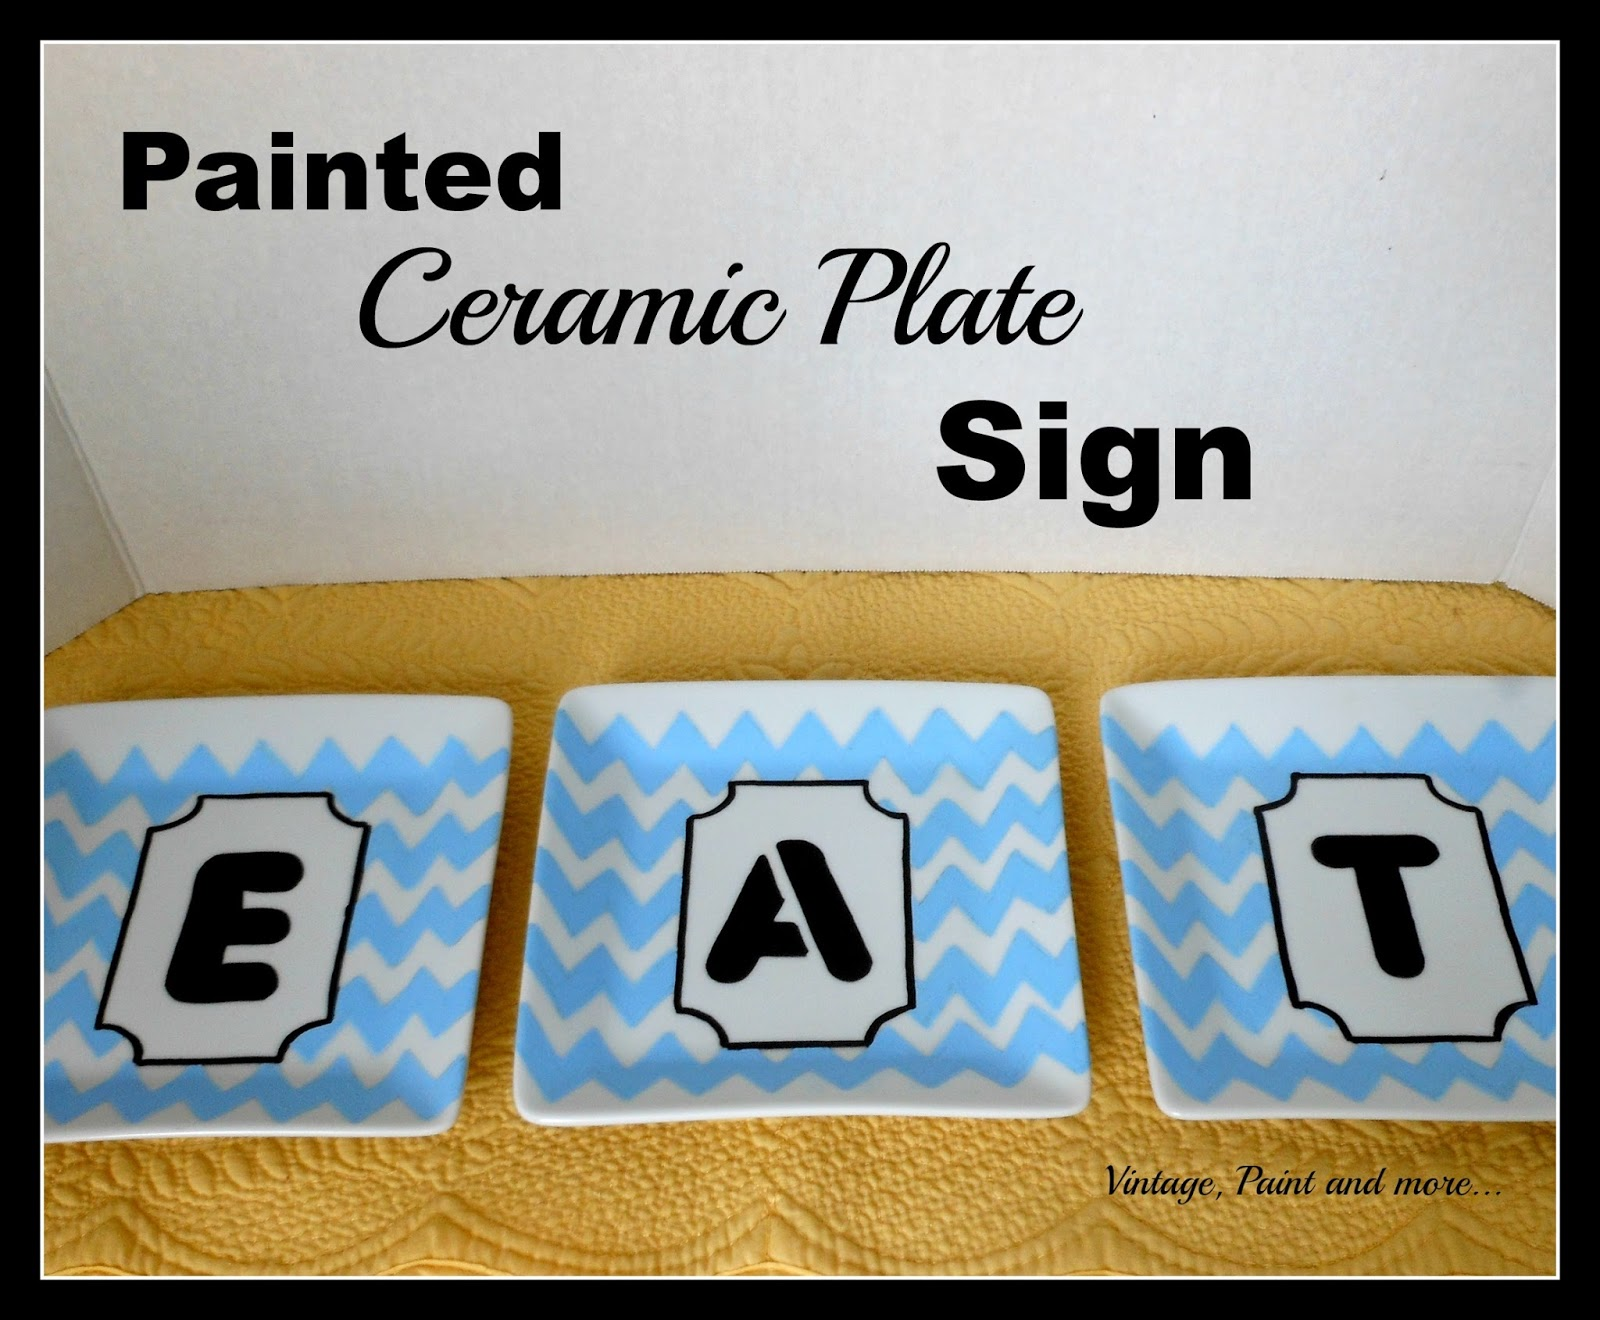 Vintage, Paint and more... DIY kitchen sign made with ceramic plates and stenciling